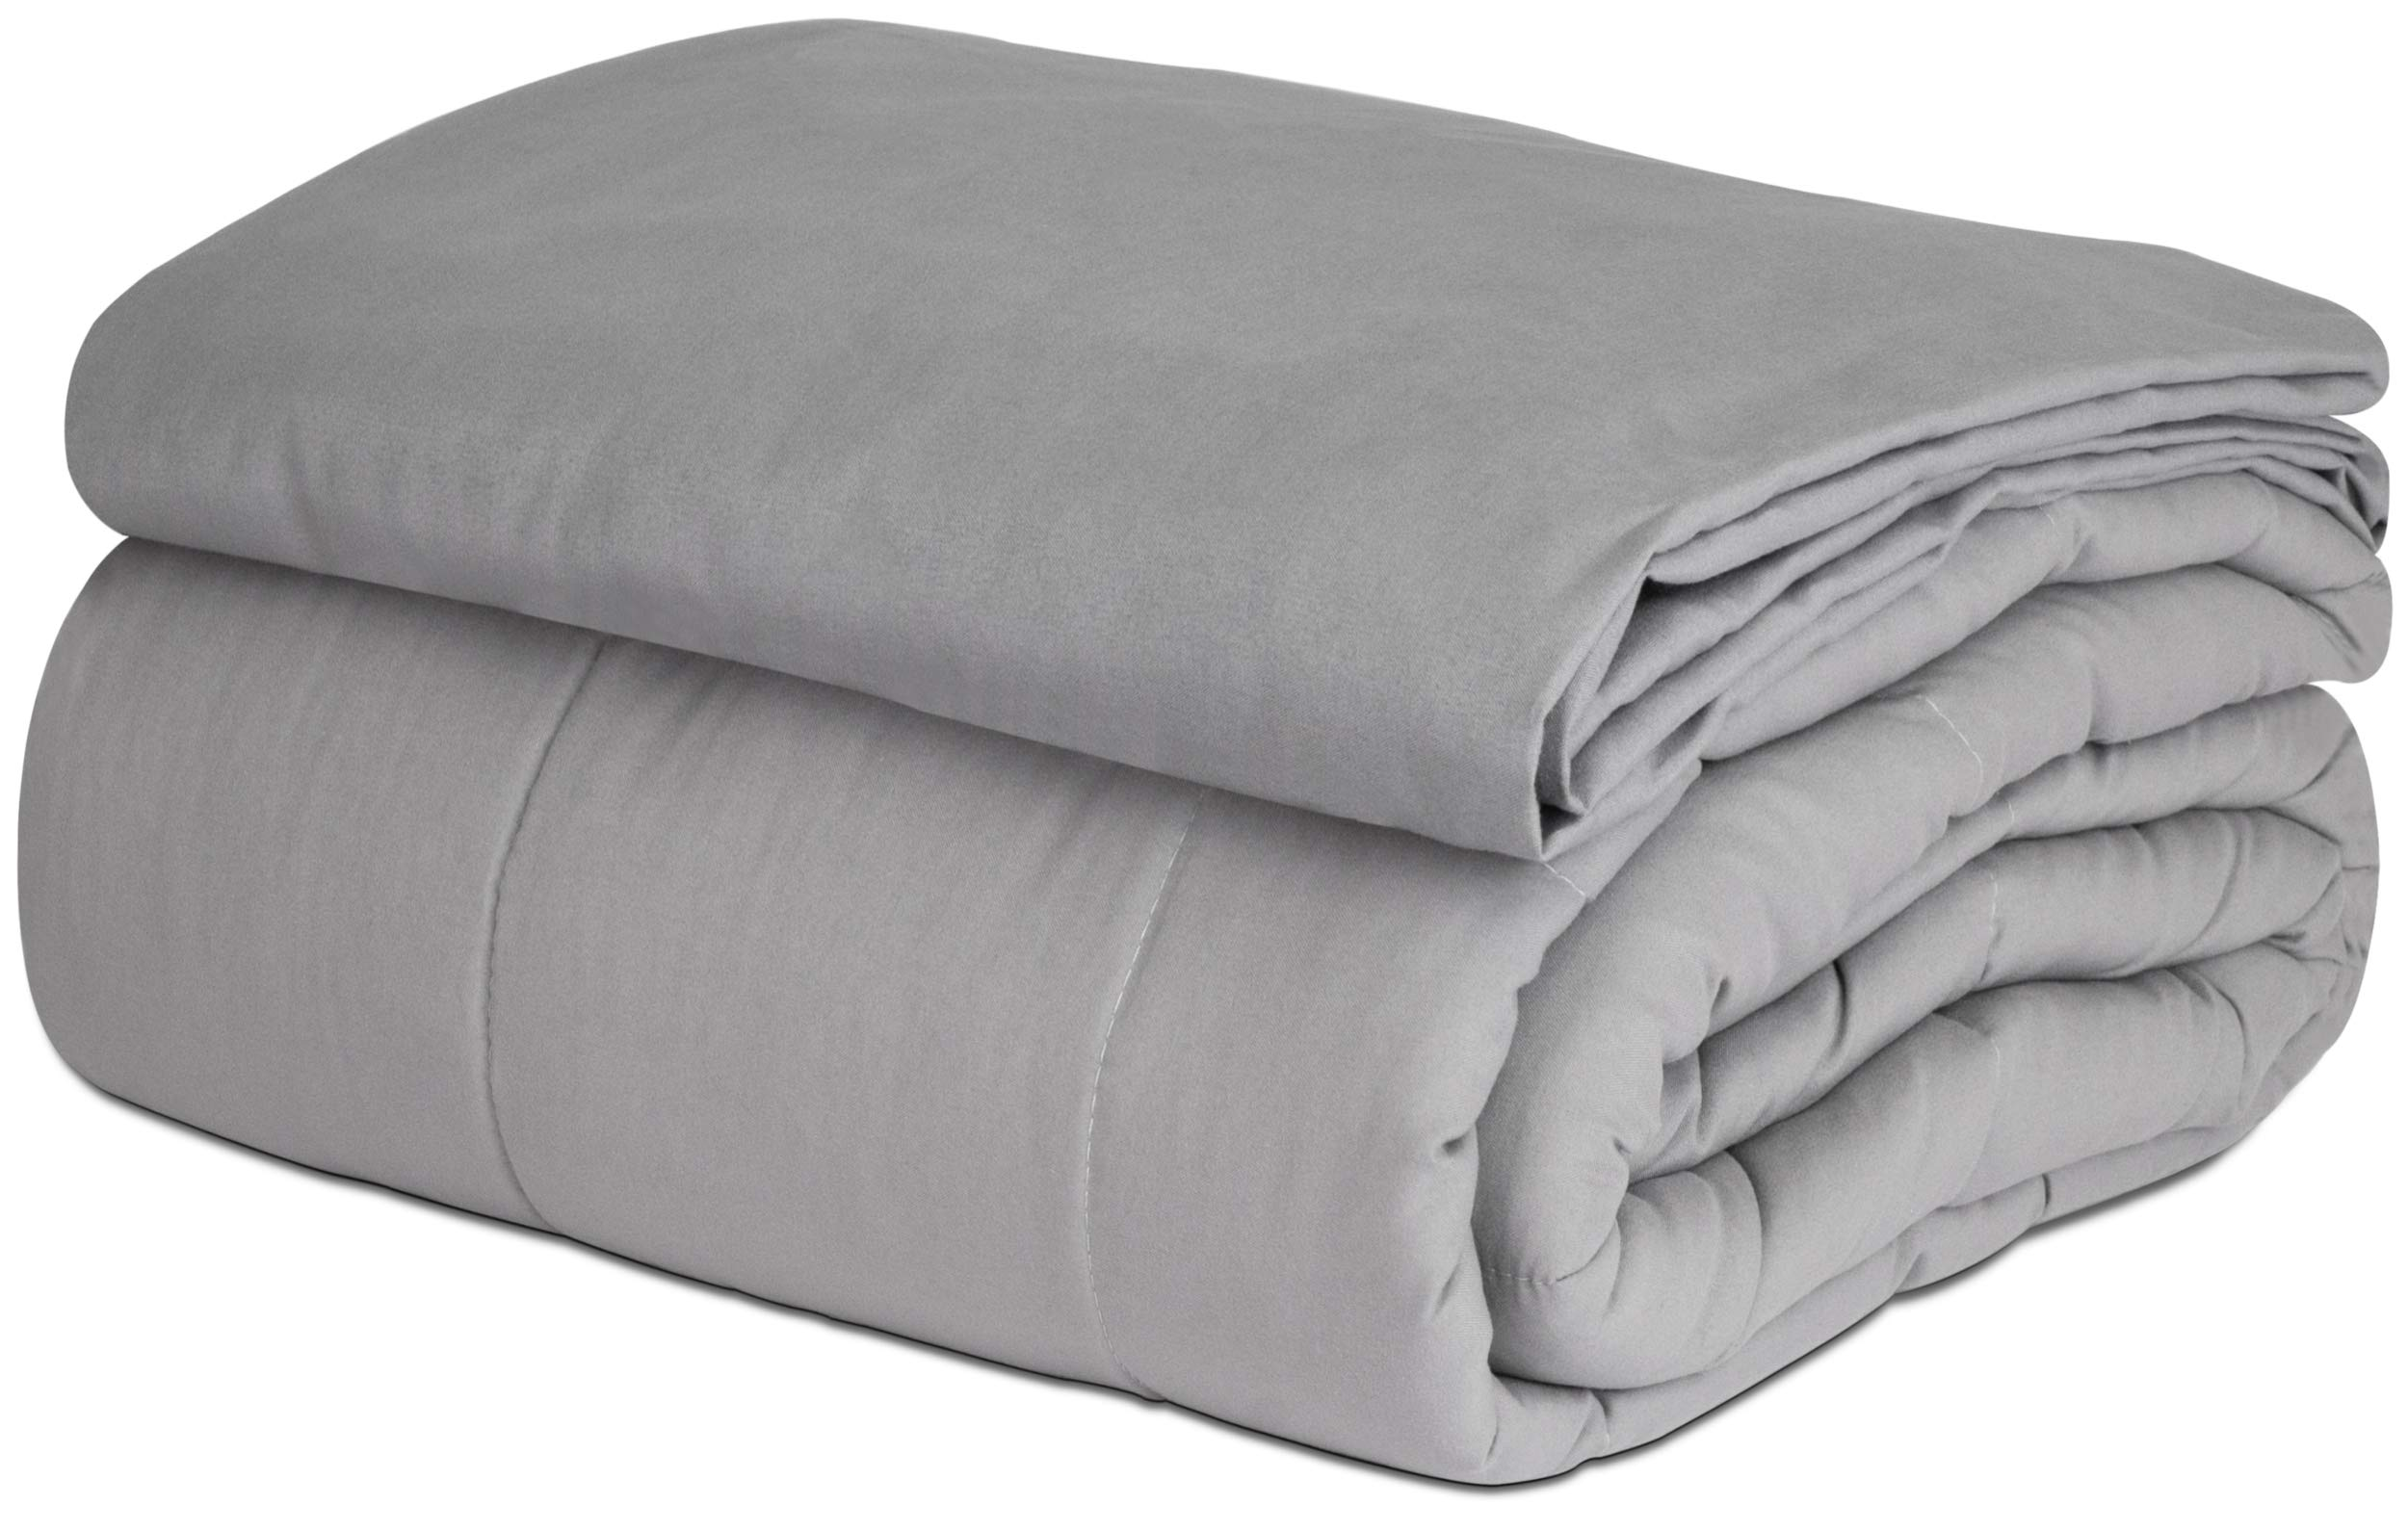 SAFR Home Therapy Weighted Blanket & Removable Cover (60''x80'' | 15 lbs, Grey Cooling) by SAFR